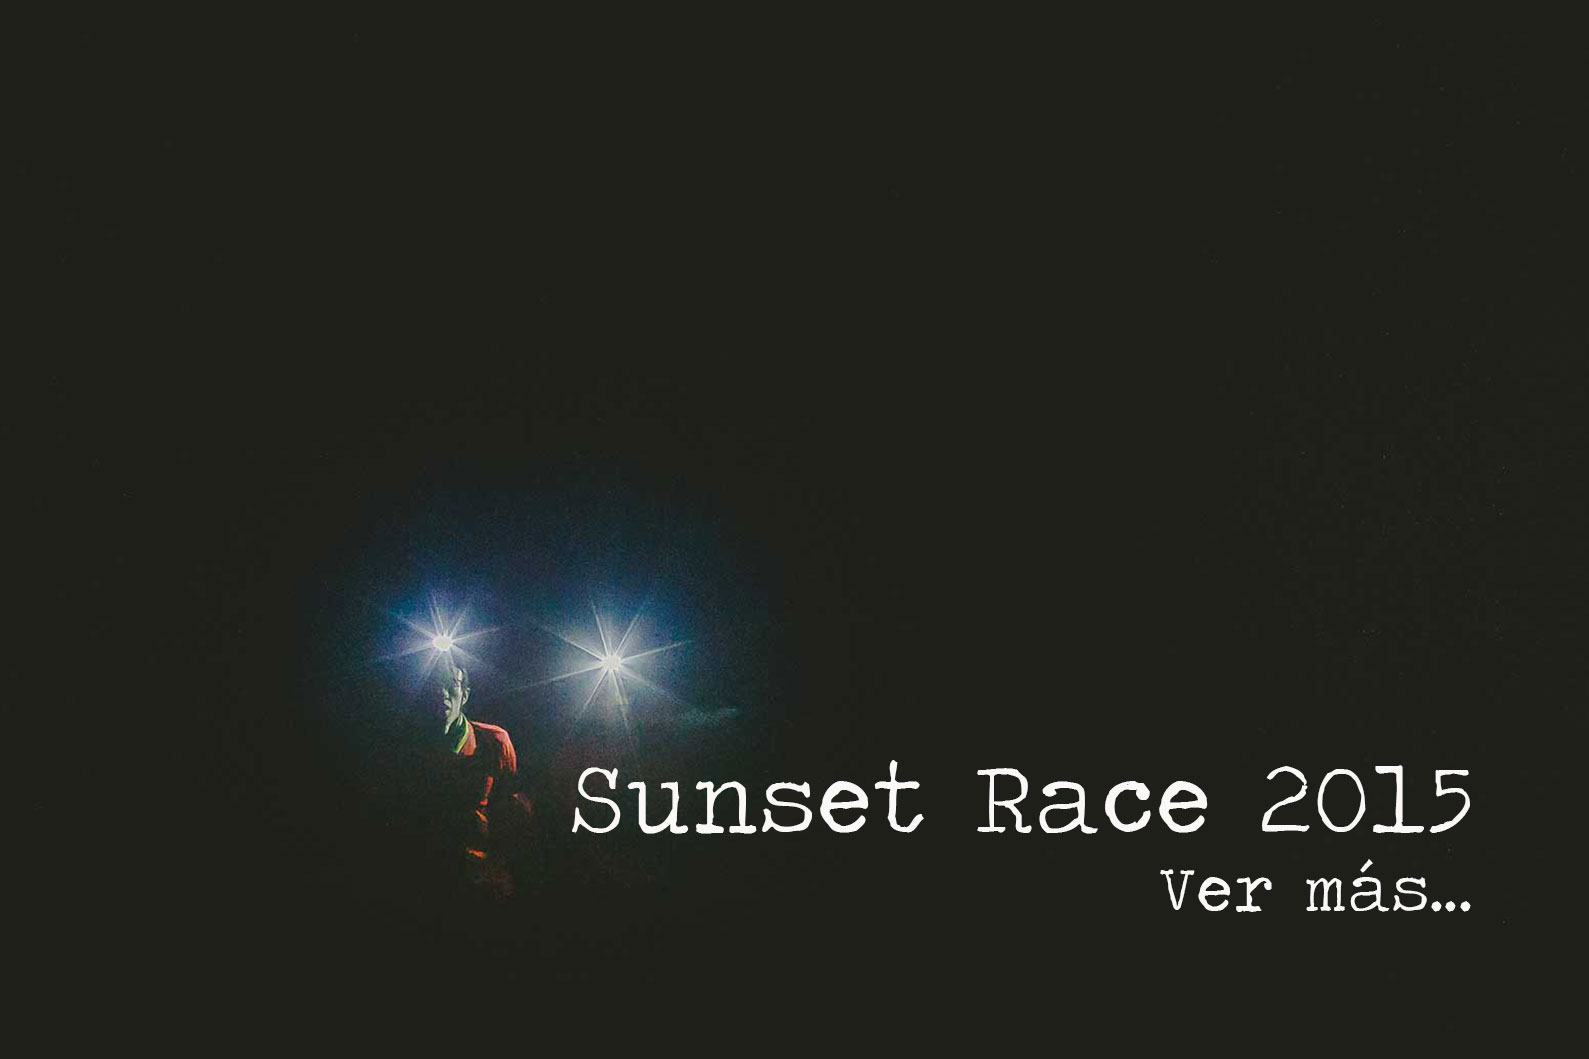 Sunset Race 2015s